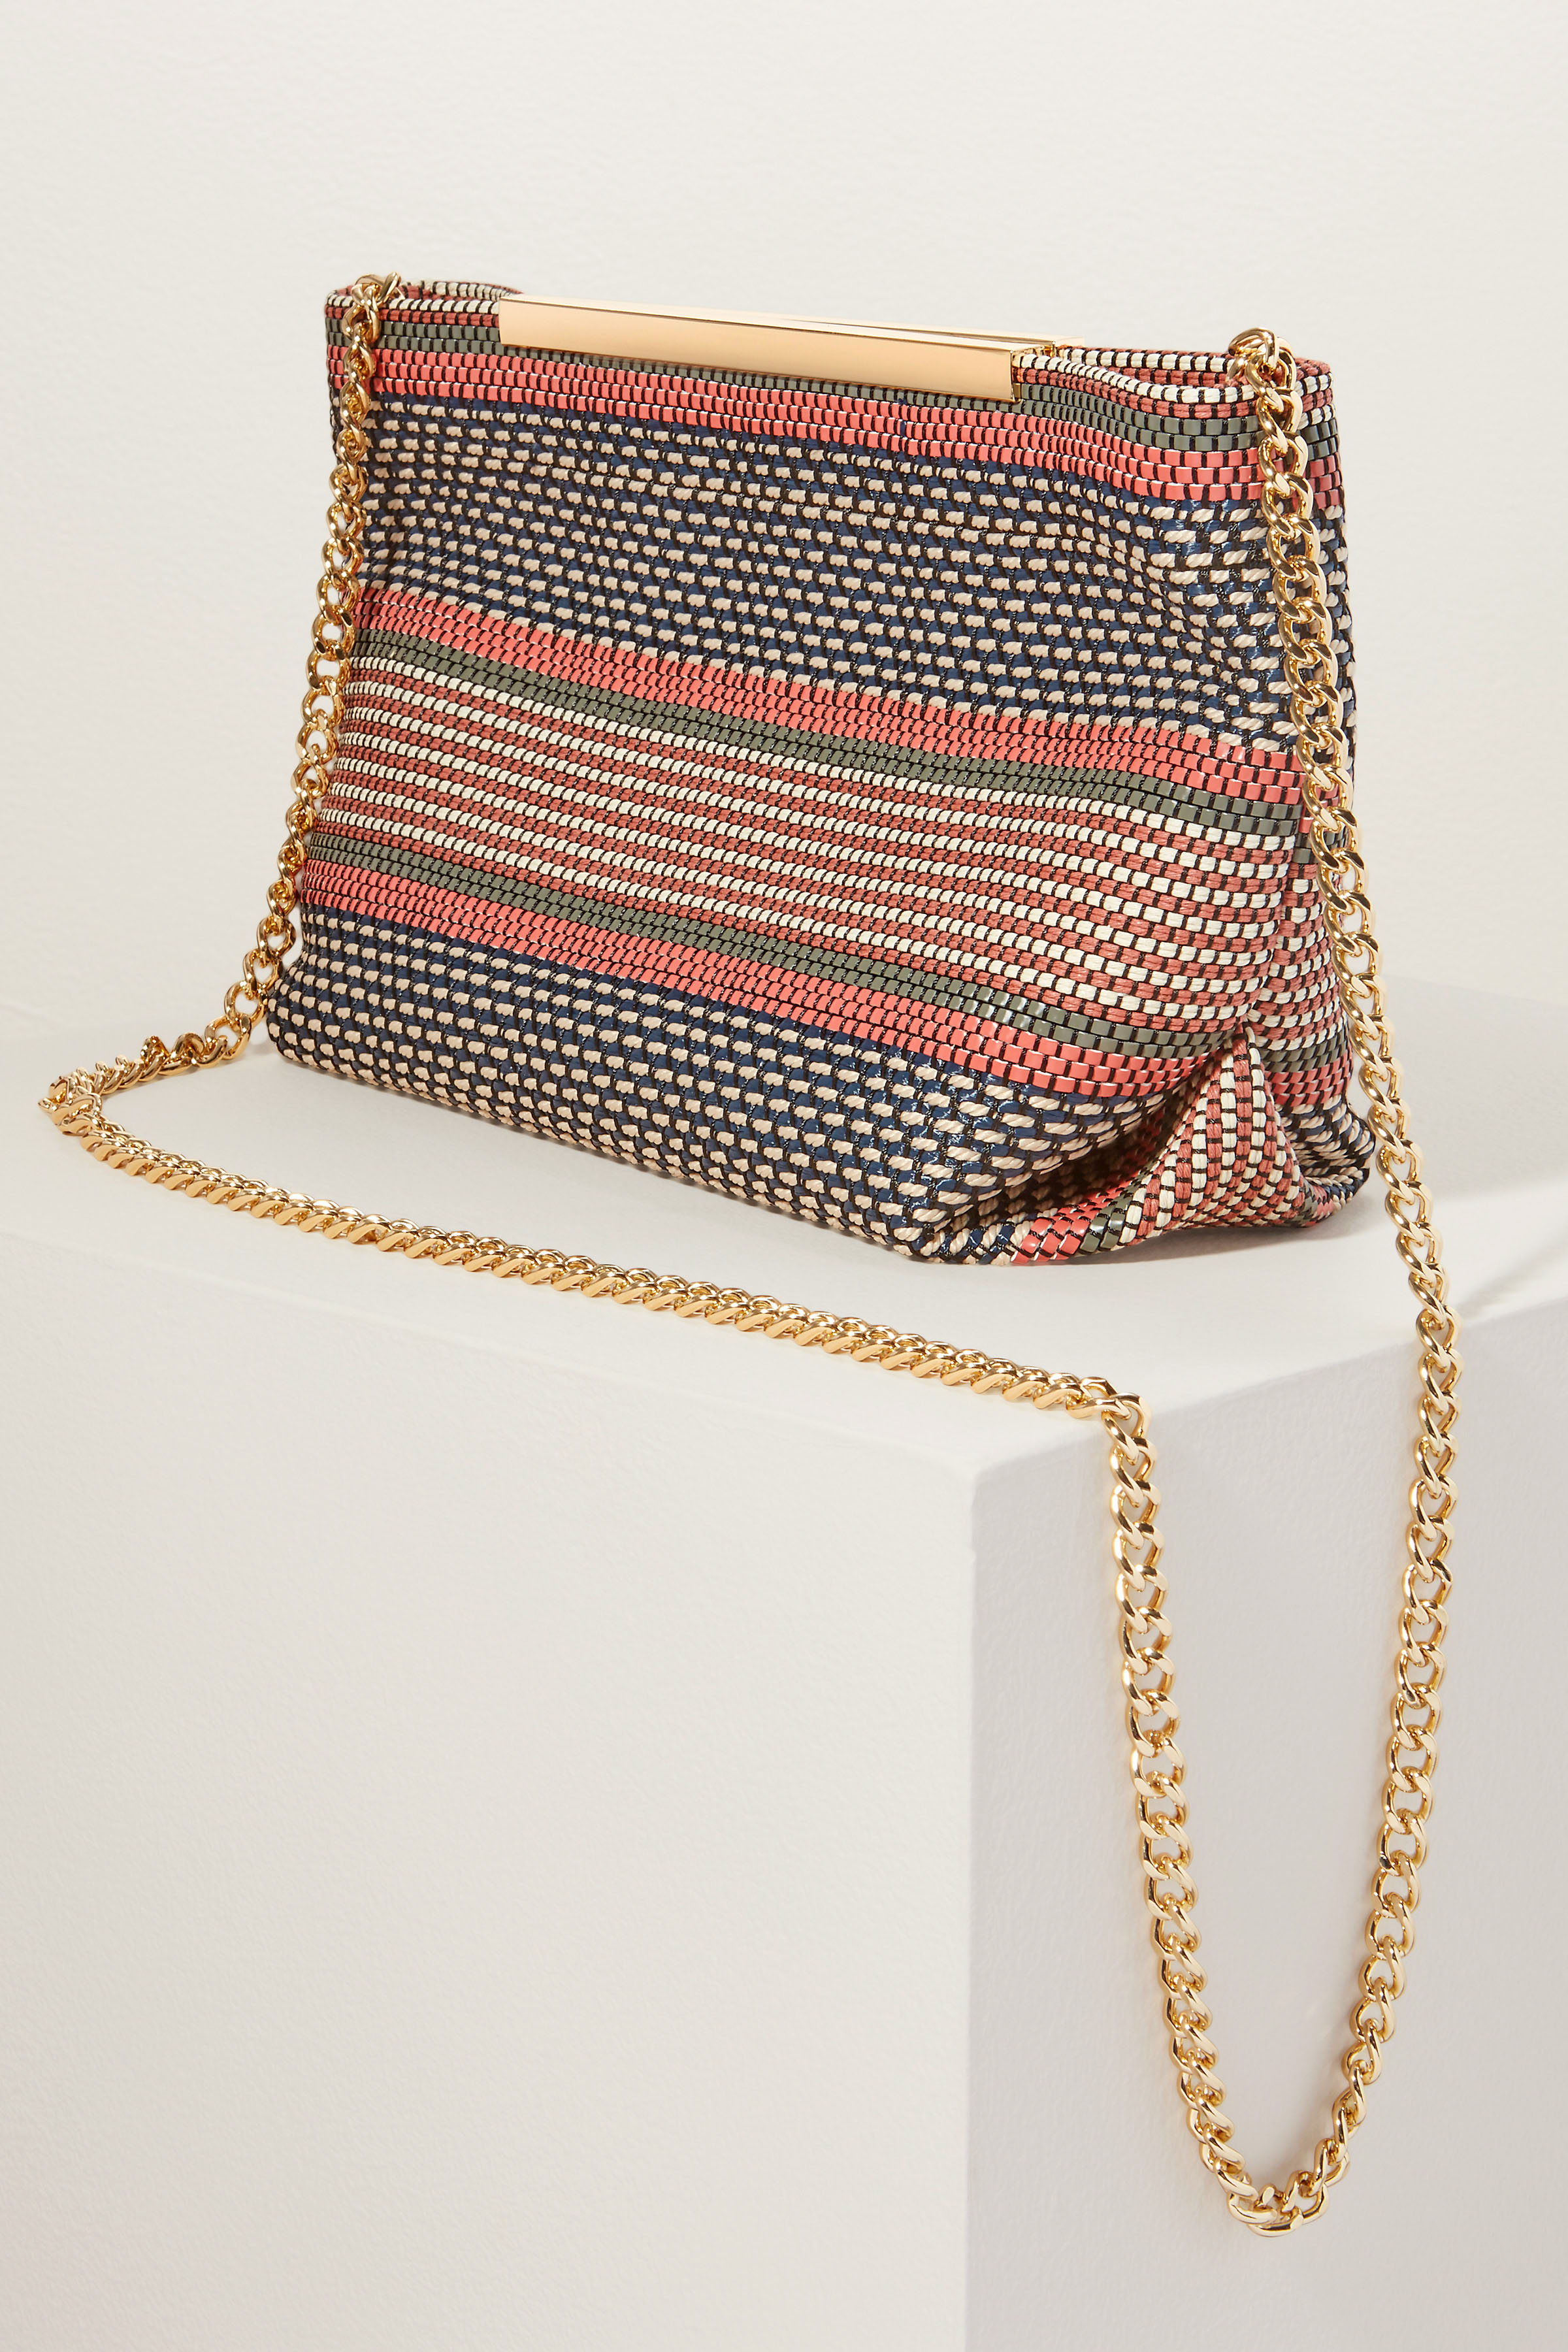 clutch with mixture of raffia, rope, and vegan leather and handwoven detail